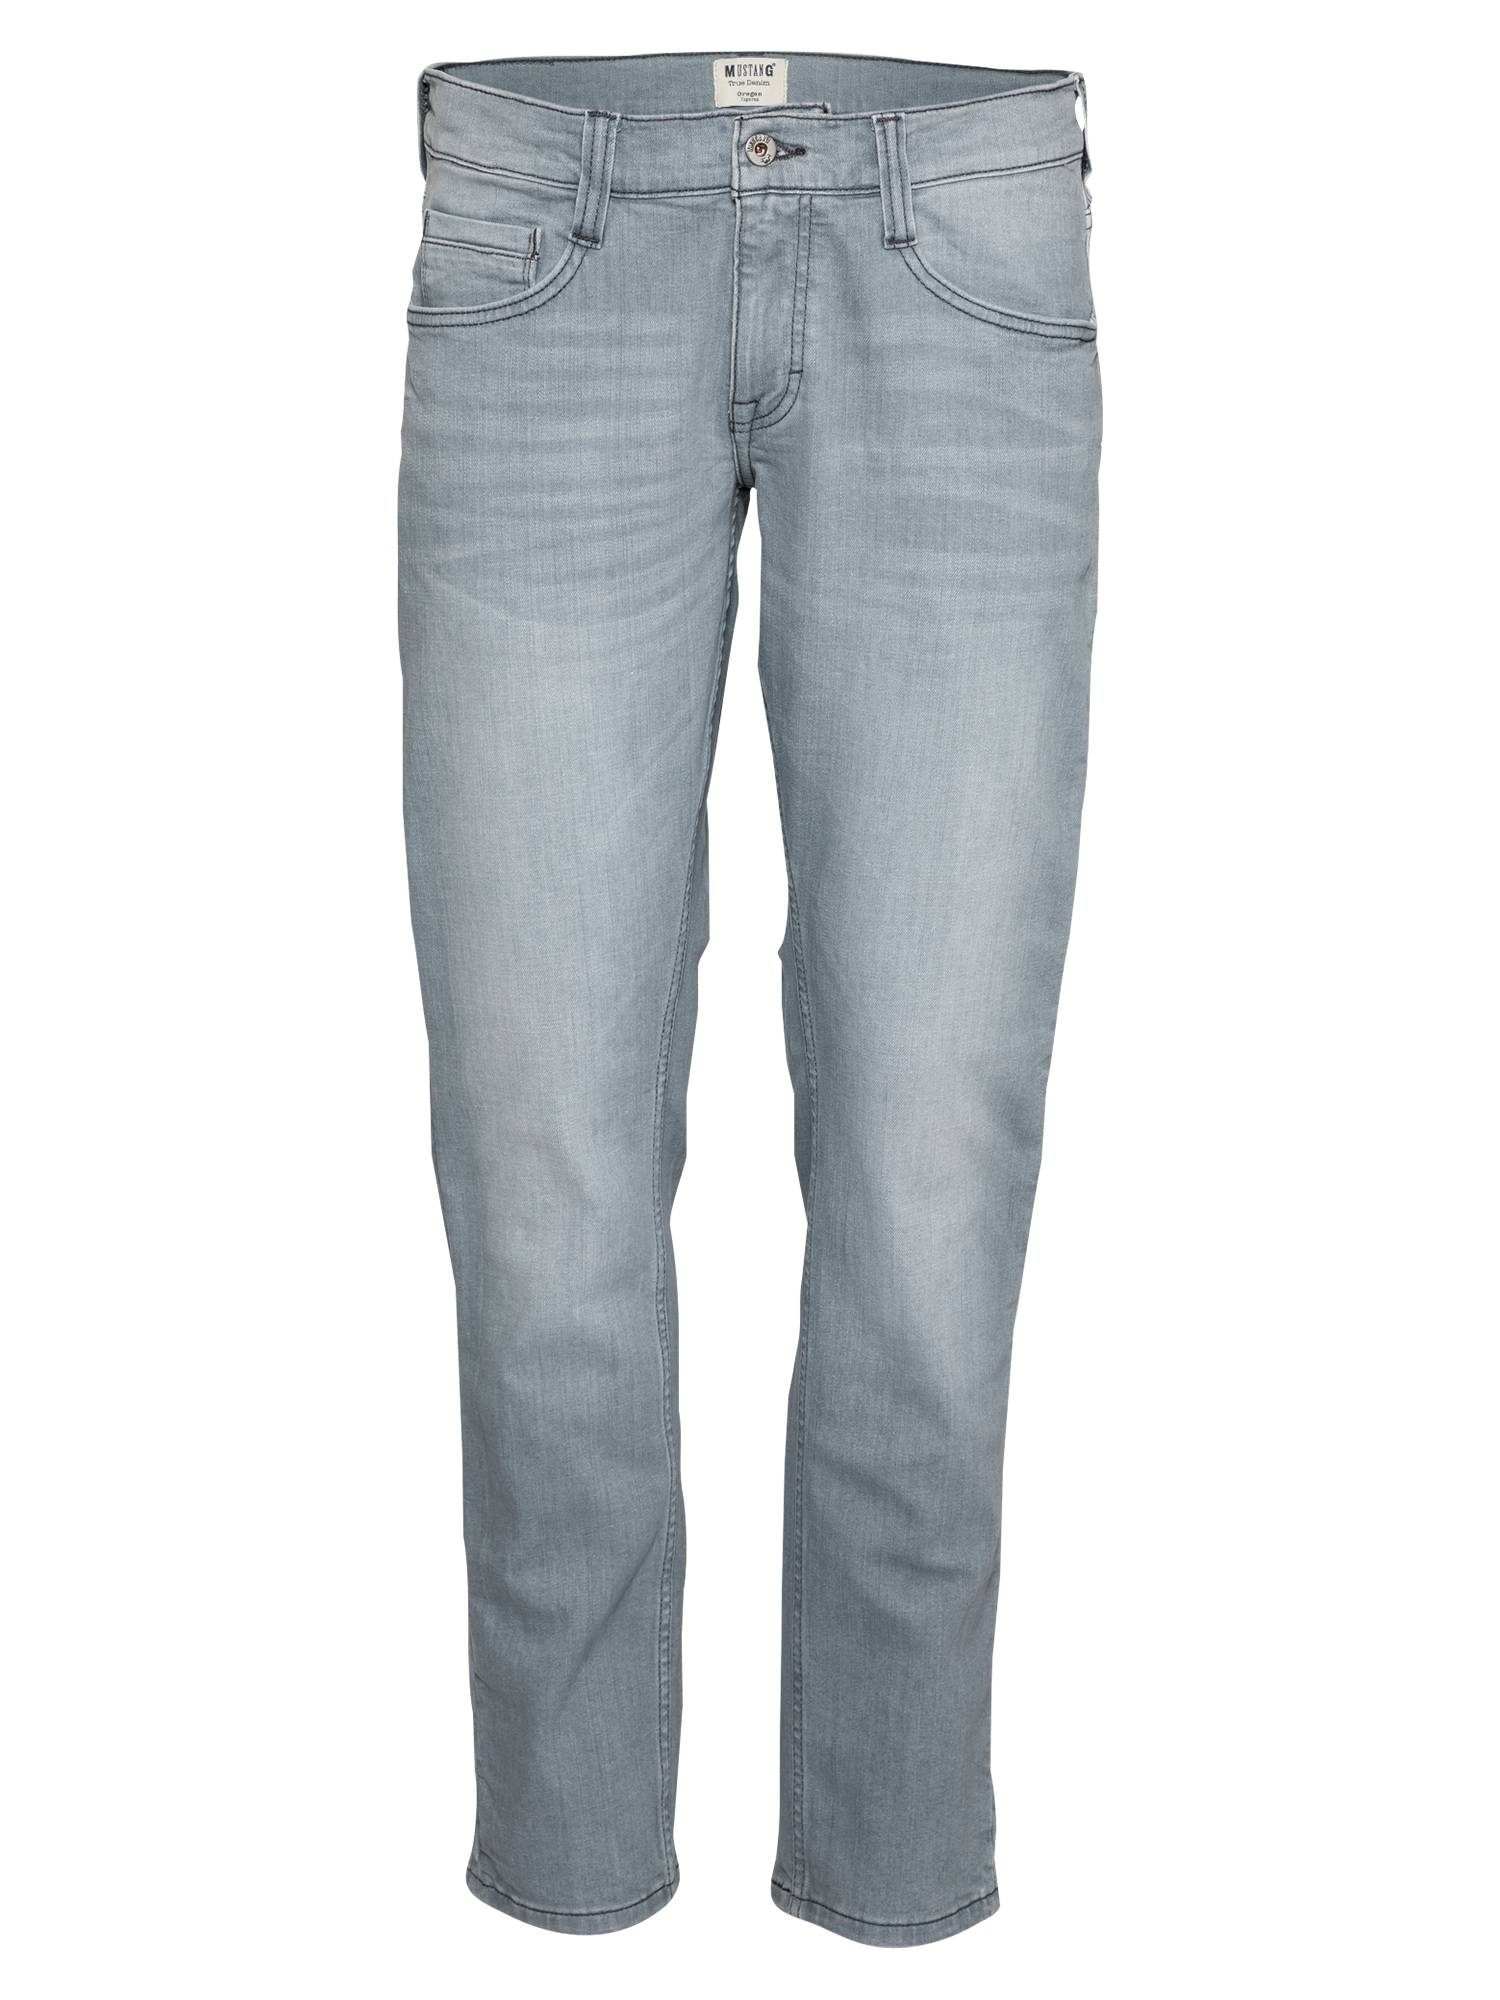 MUSTANG Jean 'Oregon'  - Gris - Taille: 32/32 - male